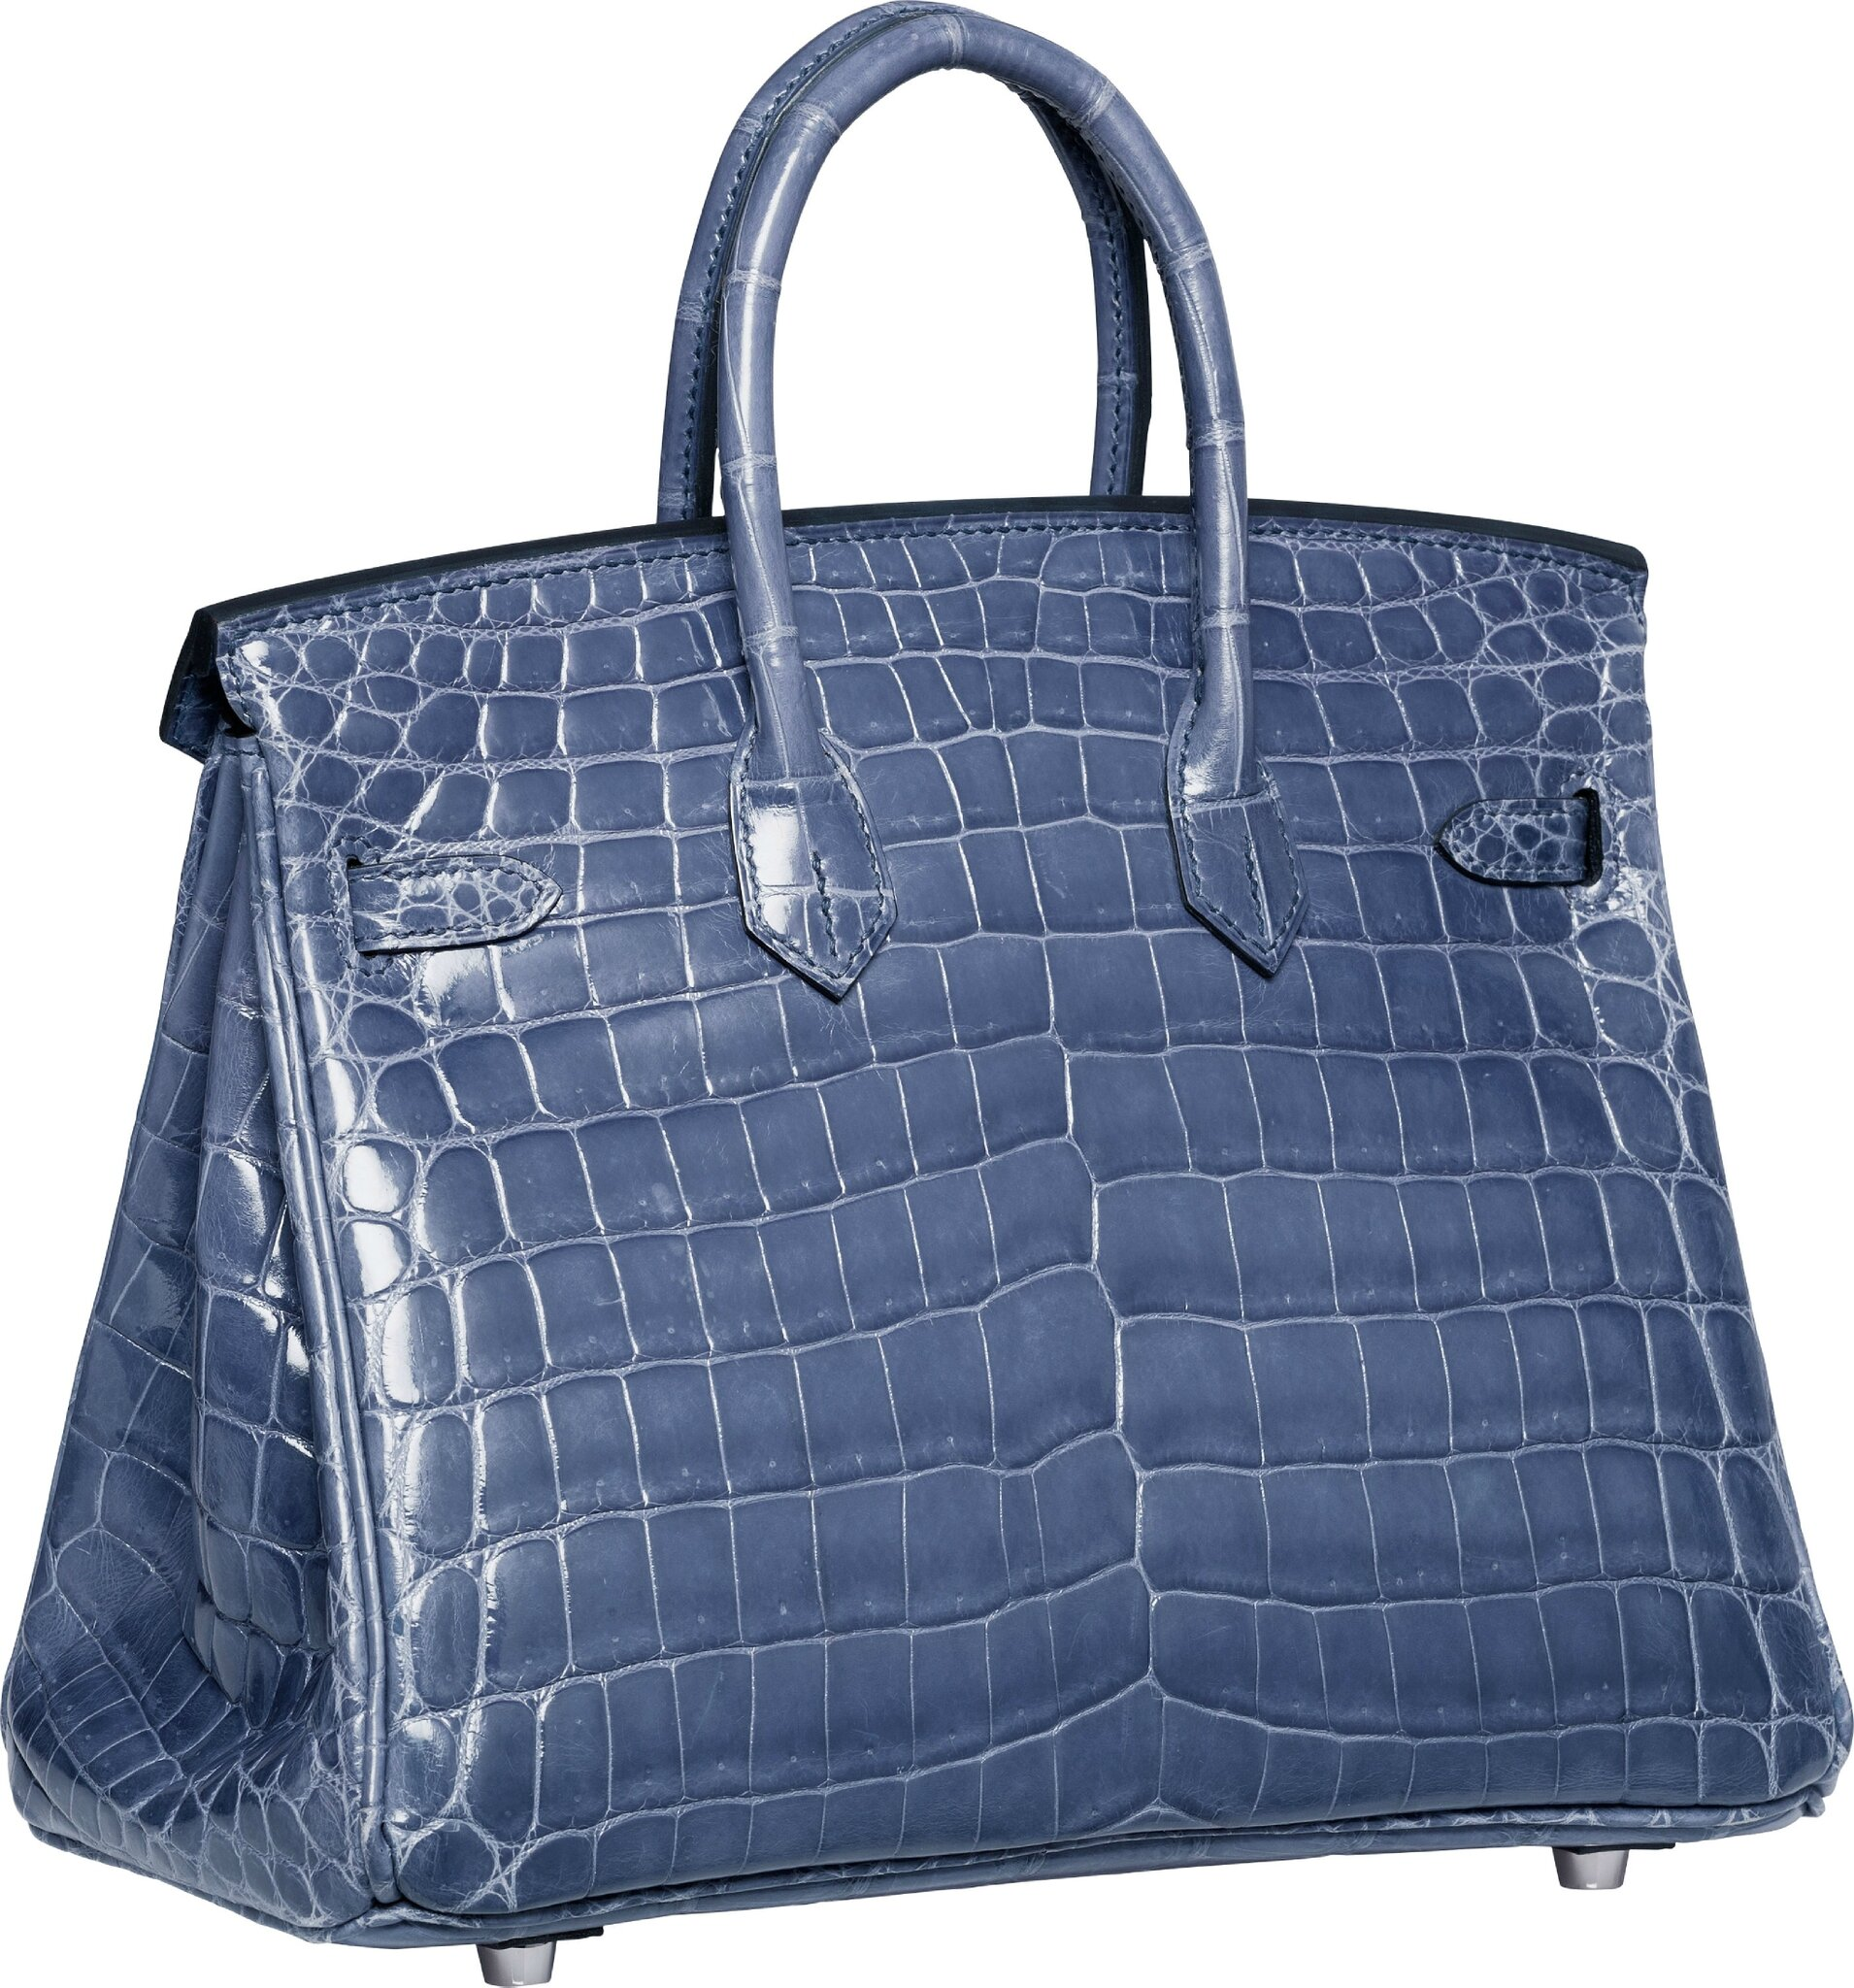 712b10f66a Exceptional Chanel 'Diamond Forever' Flap Bag sparkles in New York ...